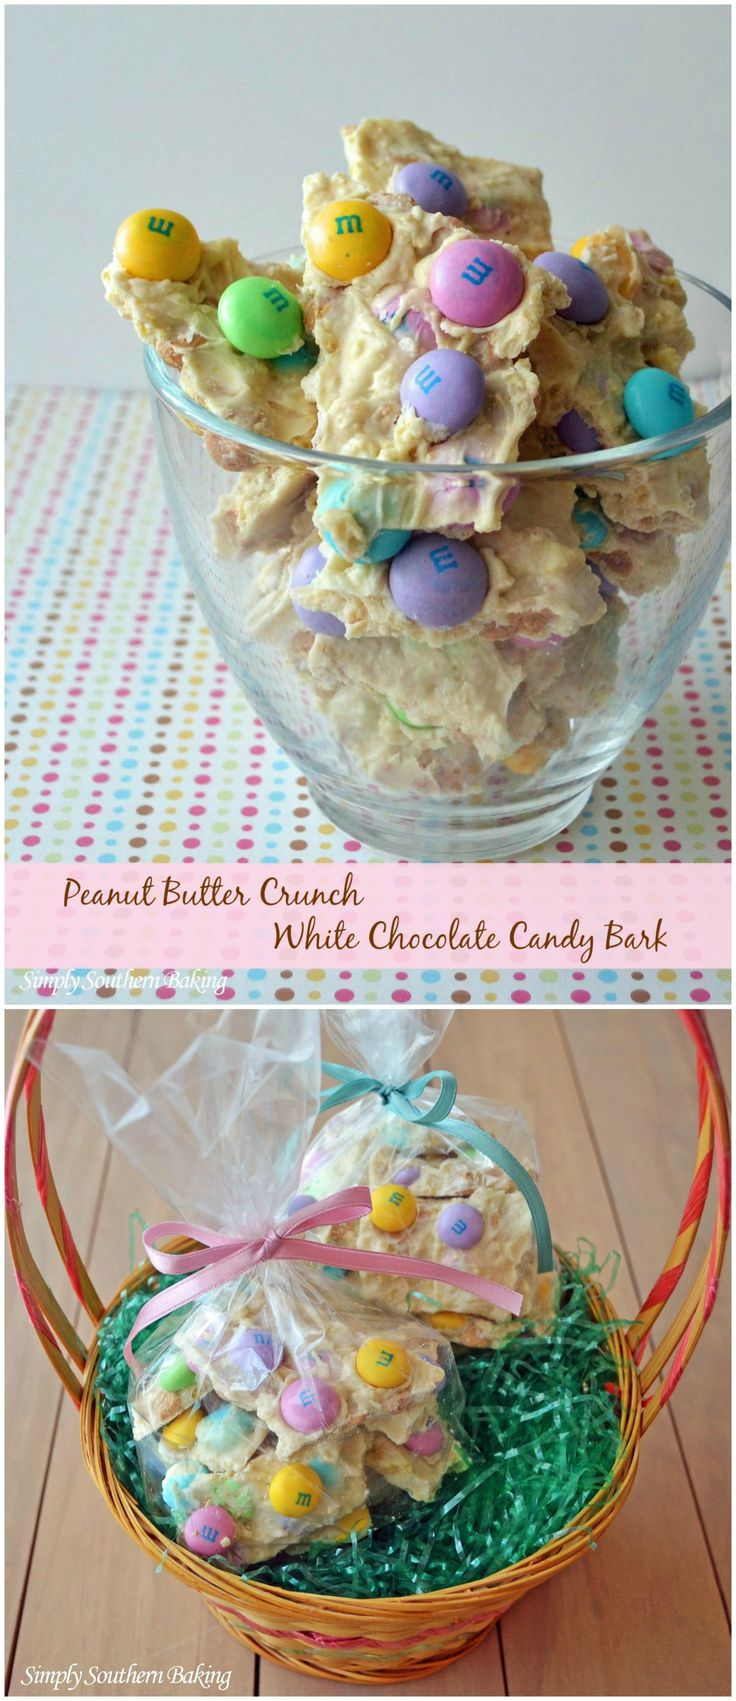 Peanut Butter Crunch White Chocolate Candy Bark   Simply Southern Baking